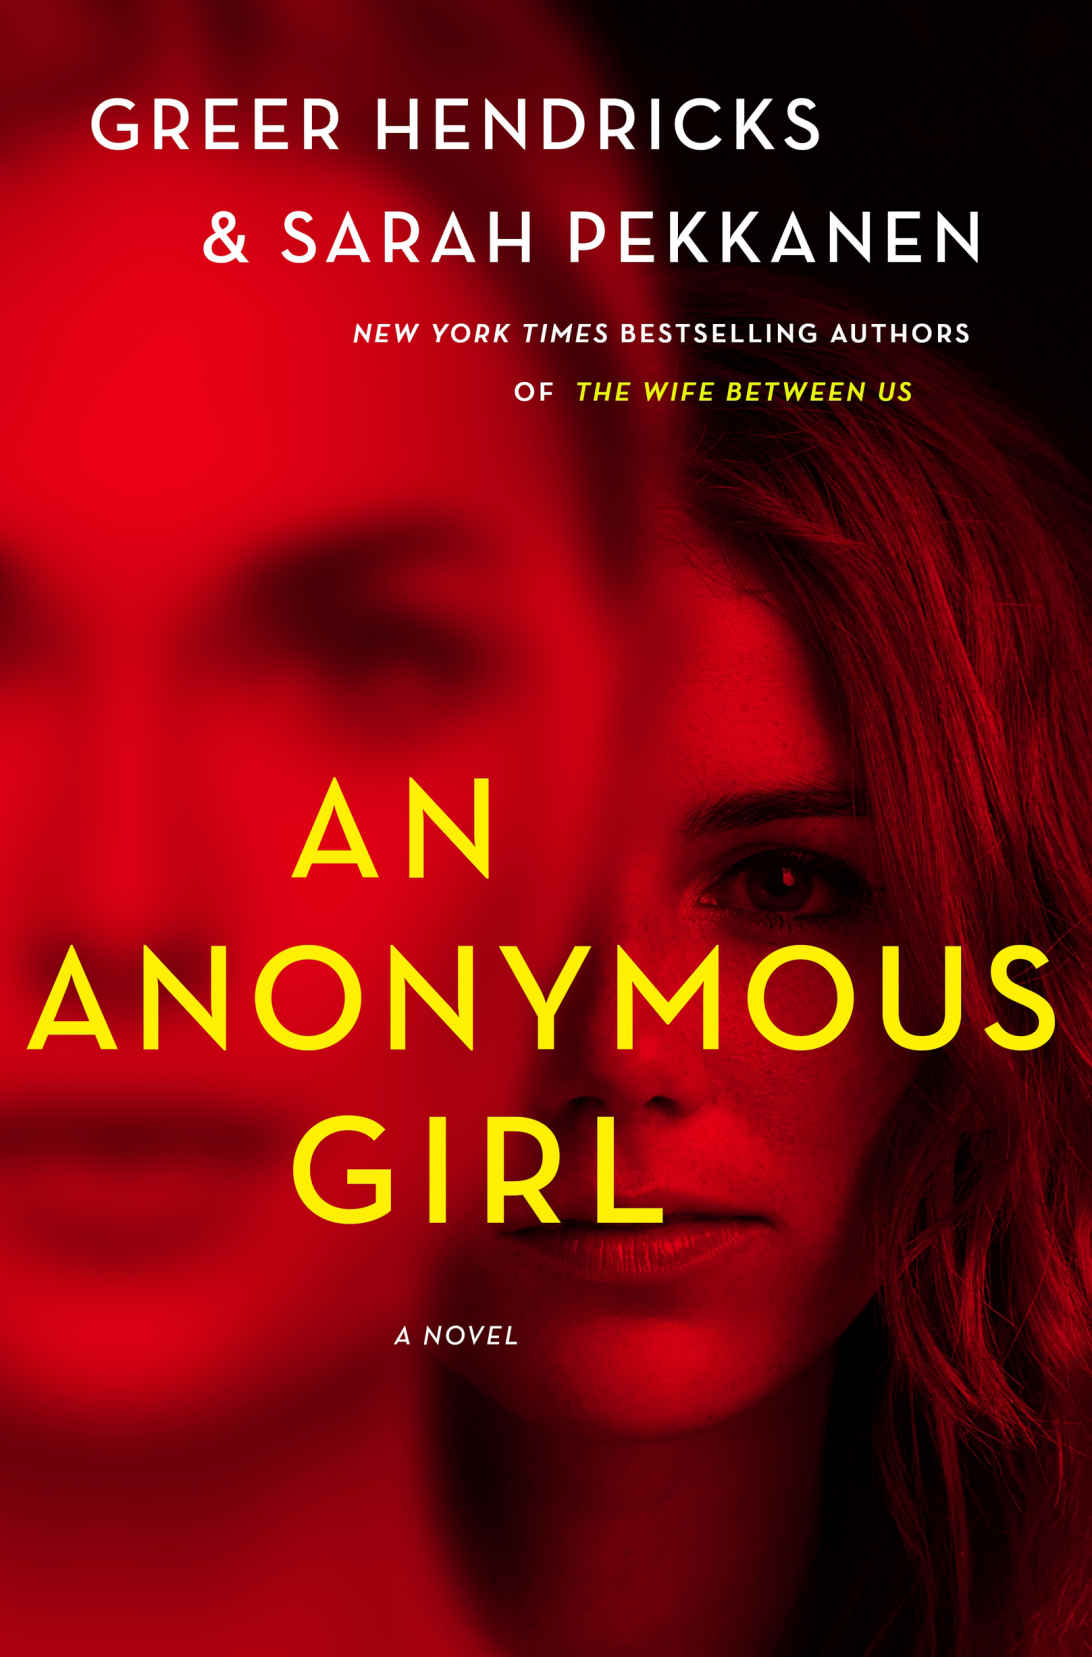 An Anonymous Girl - Summer Reading List 2019 | Rhyme & Reason